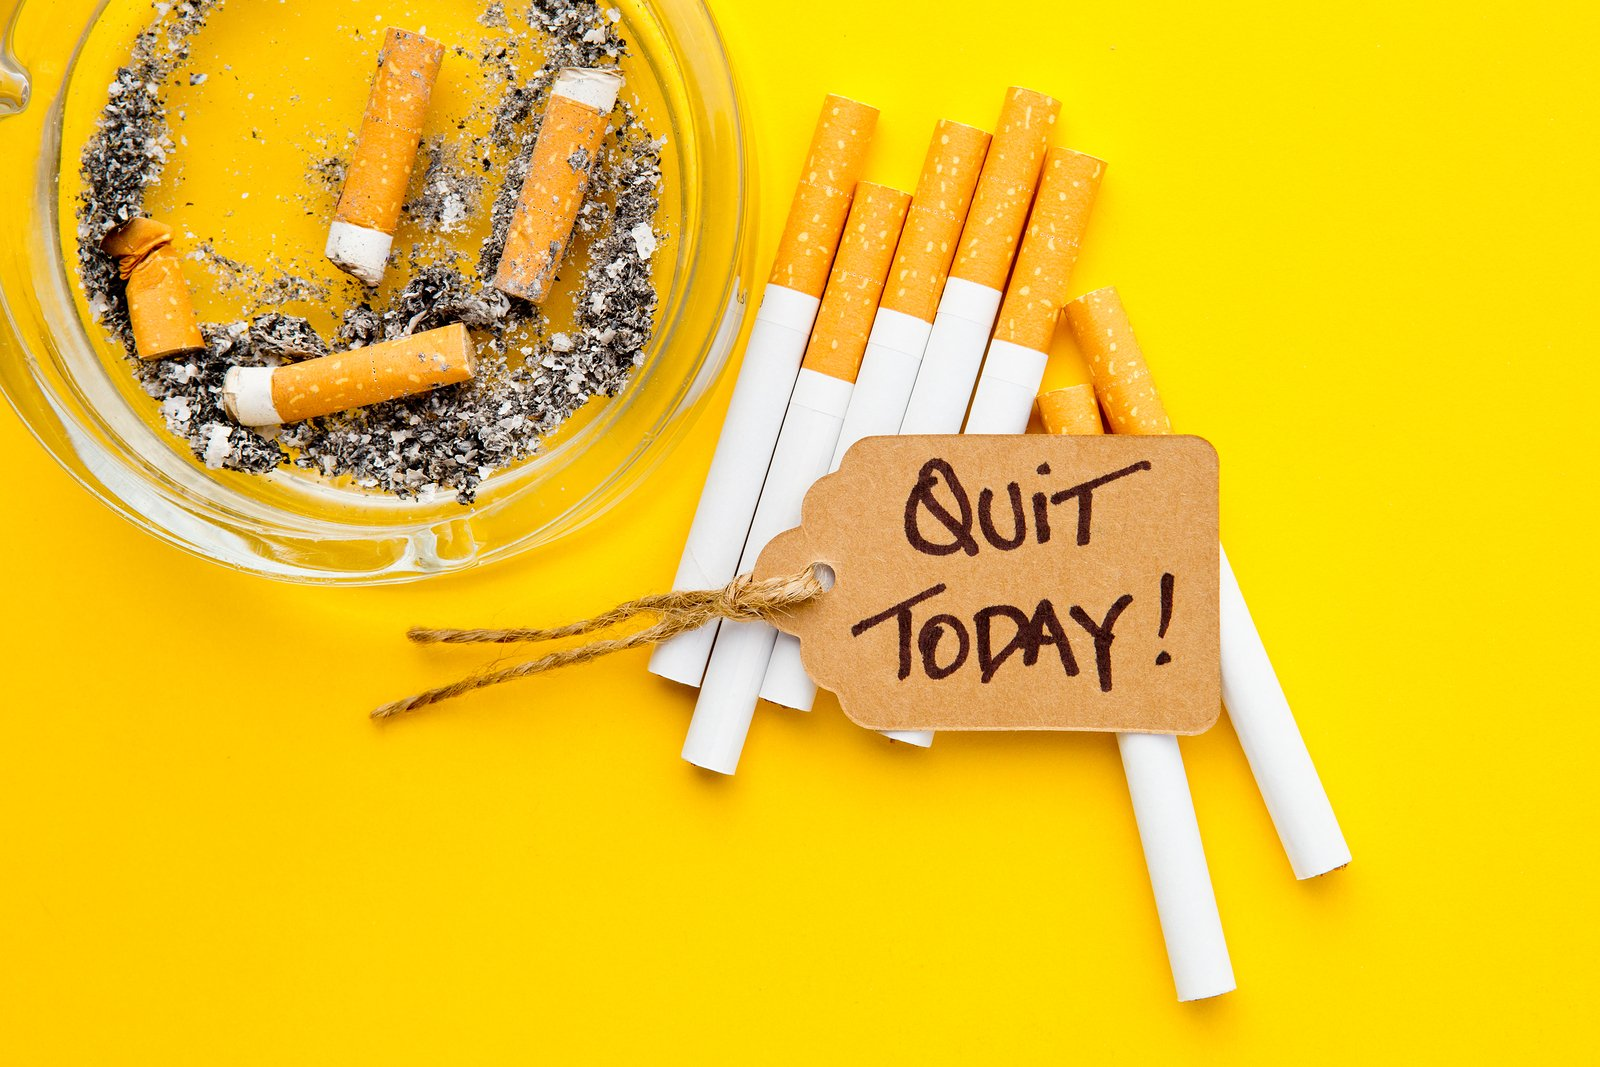 The Top Tips for Quitting Smoking